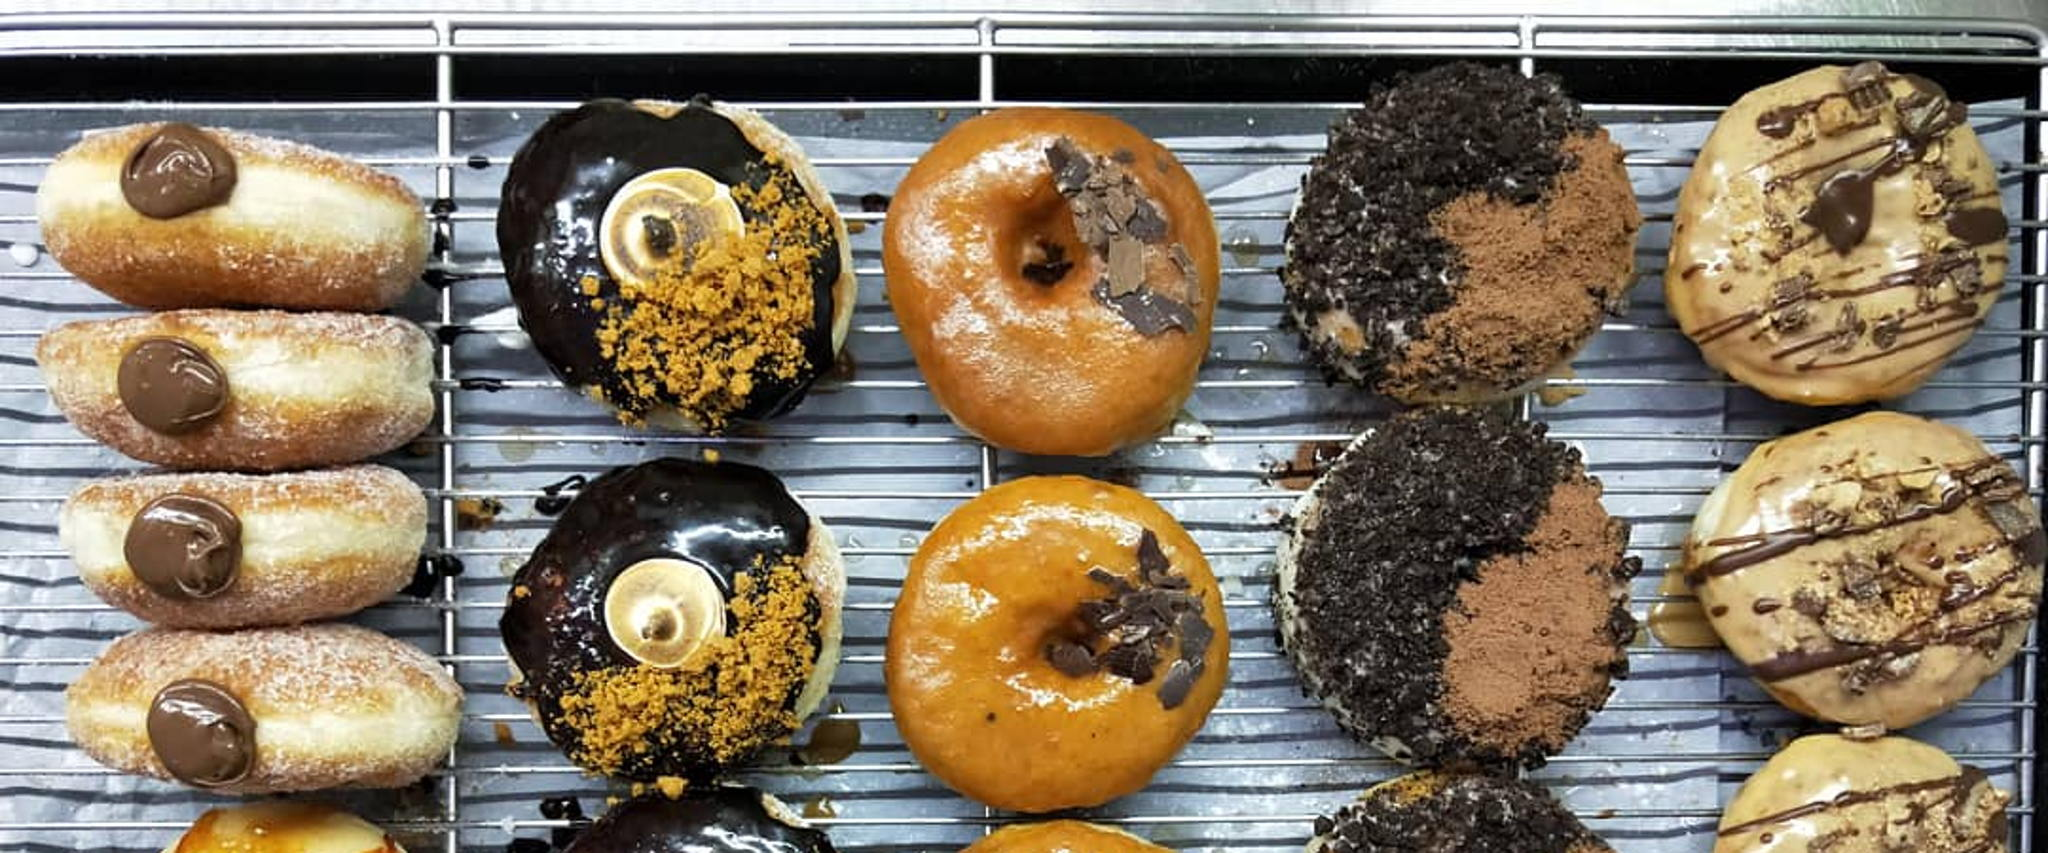 Best stuffed donuts in Singapore: Doughnut Shack, Sourbombe, The Fat Kid Bakery, and more (фото 1)